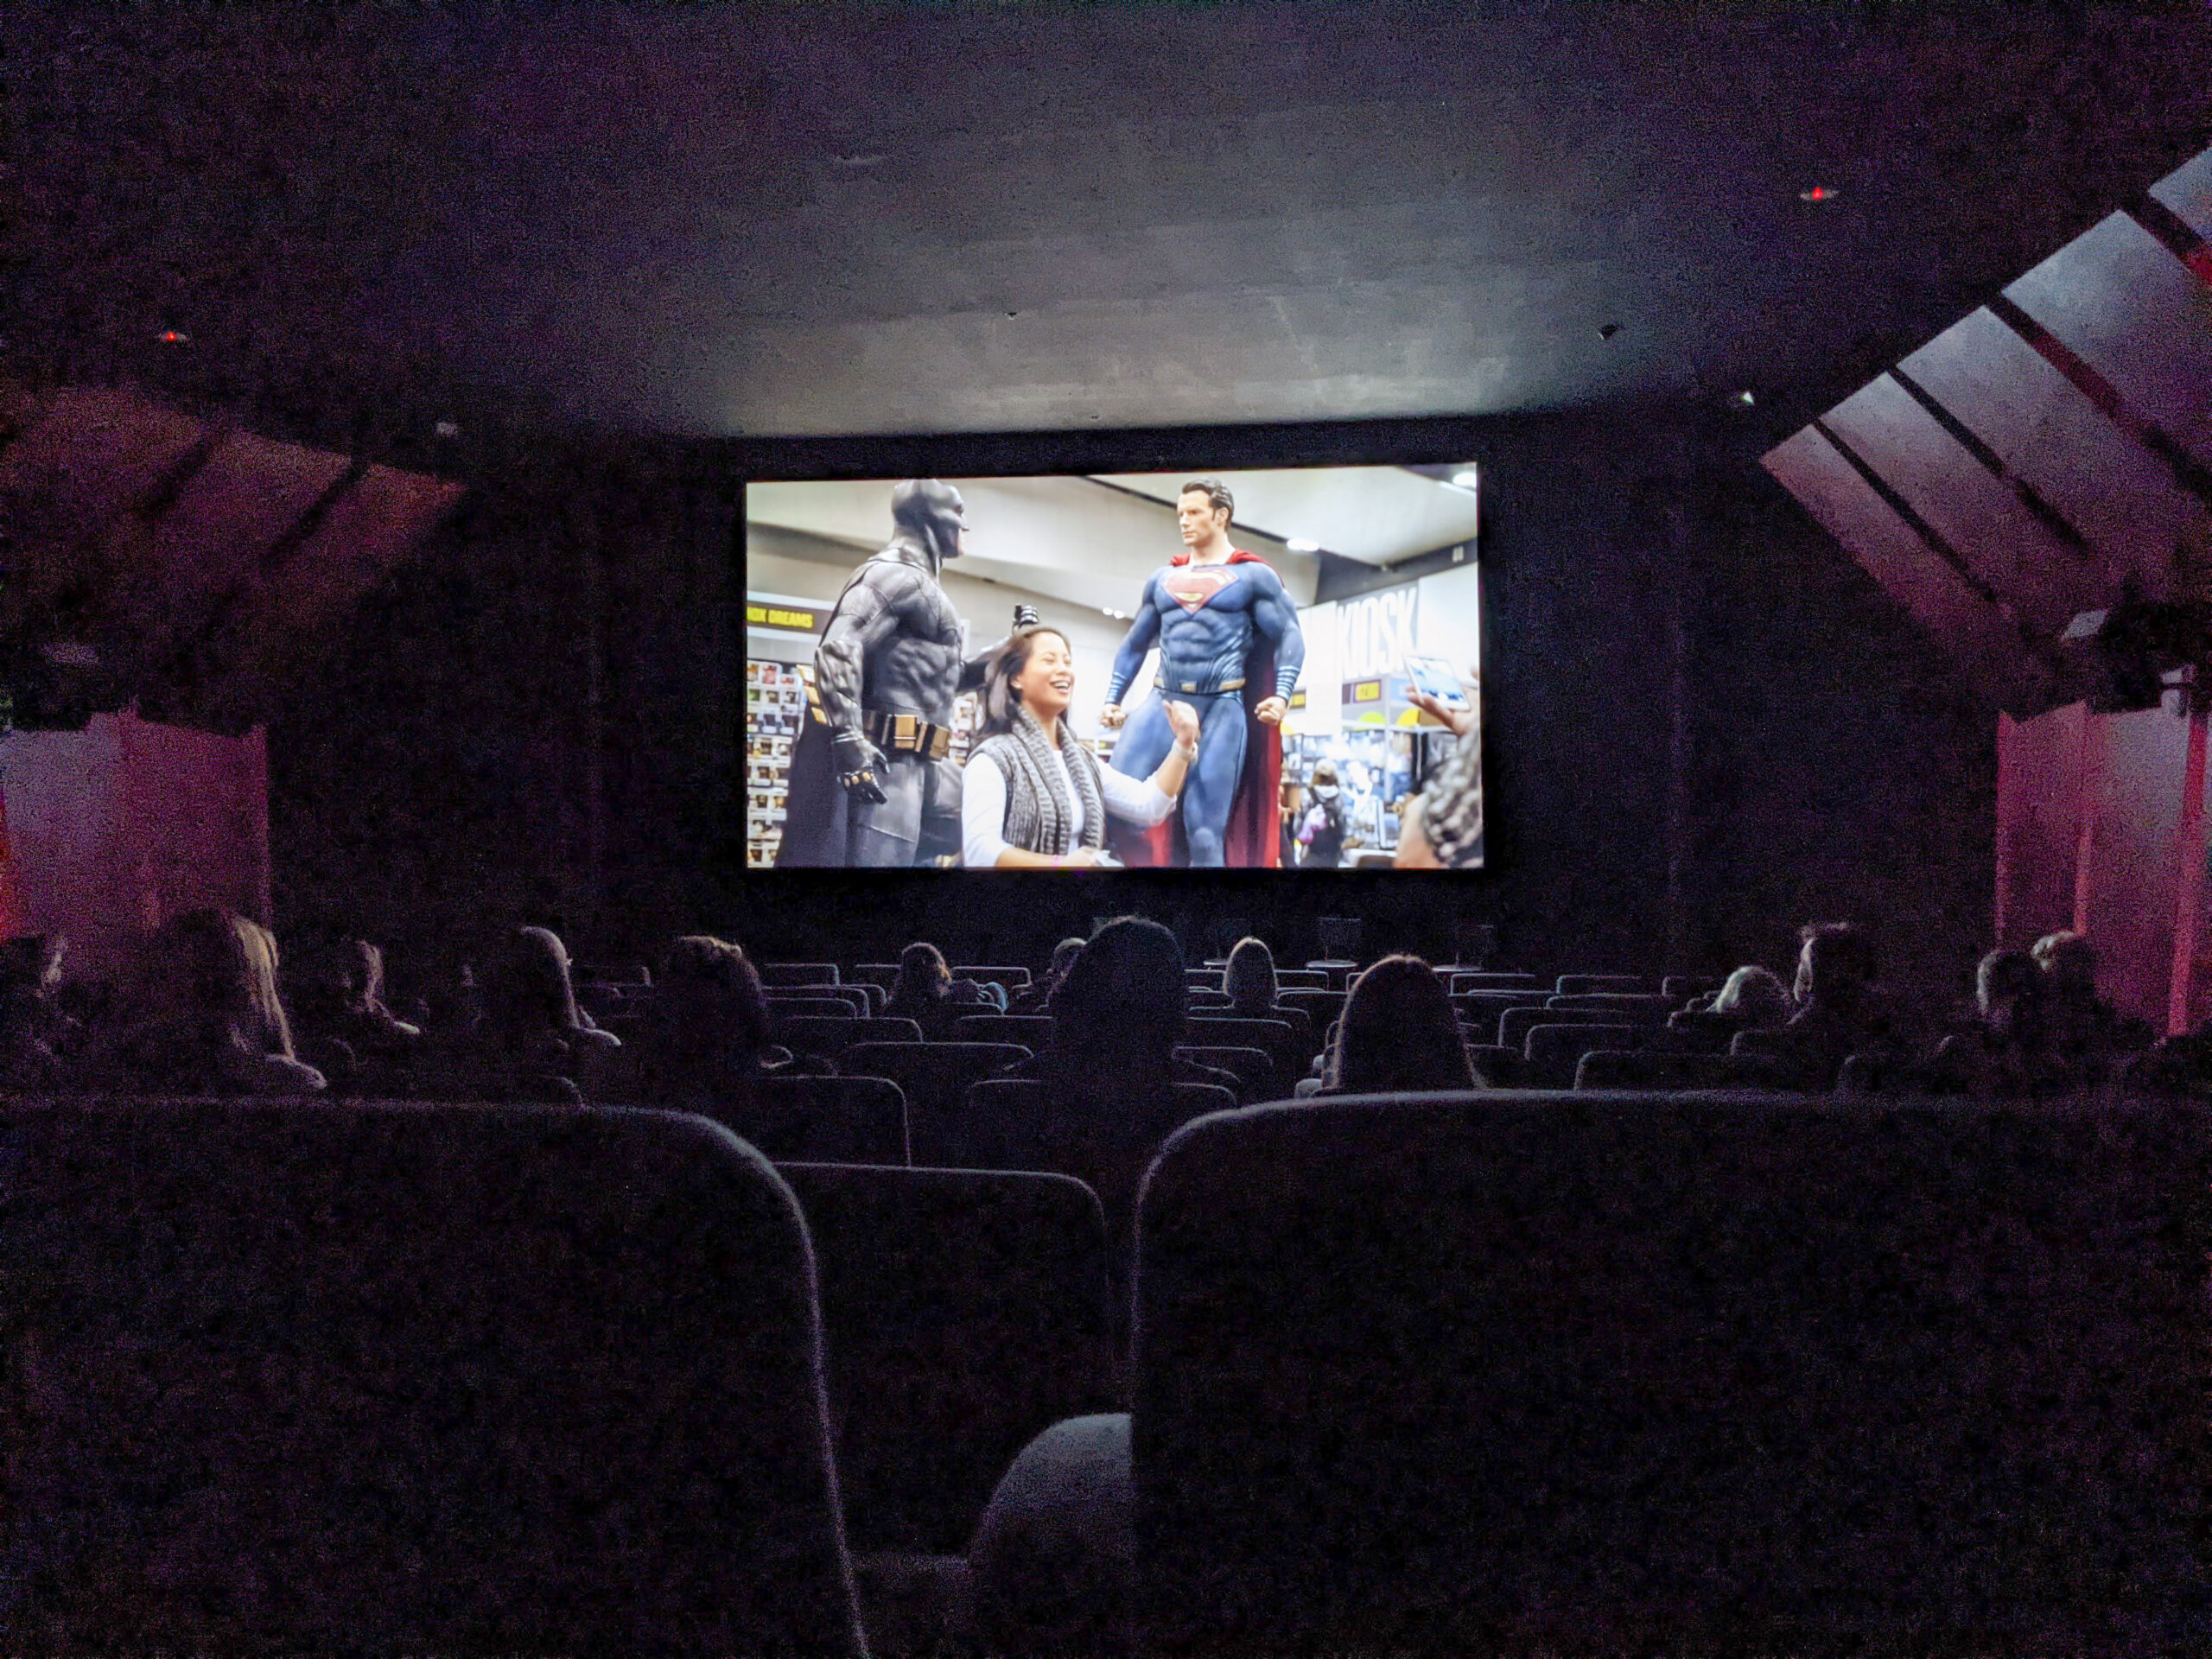 Melbourne Documentary Film festival screening of Superheroes and Me